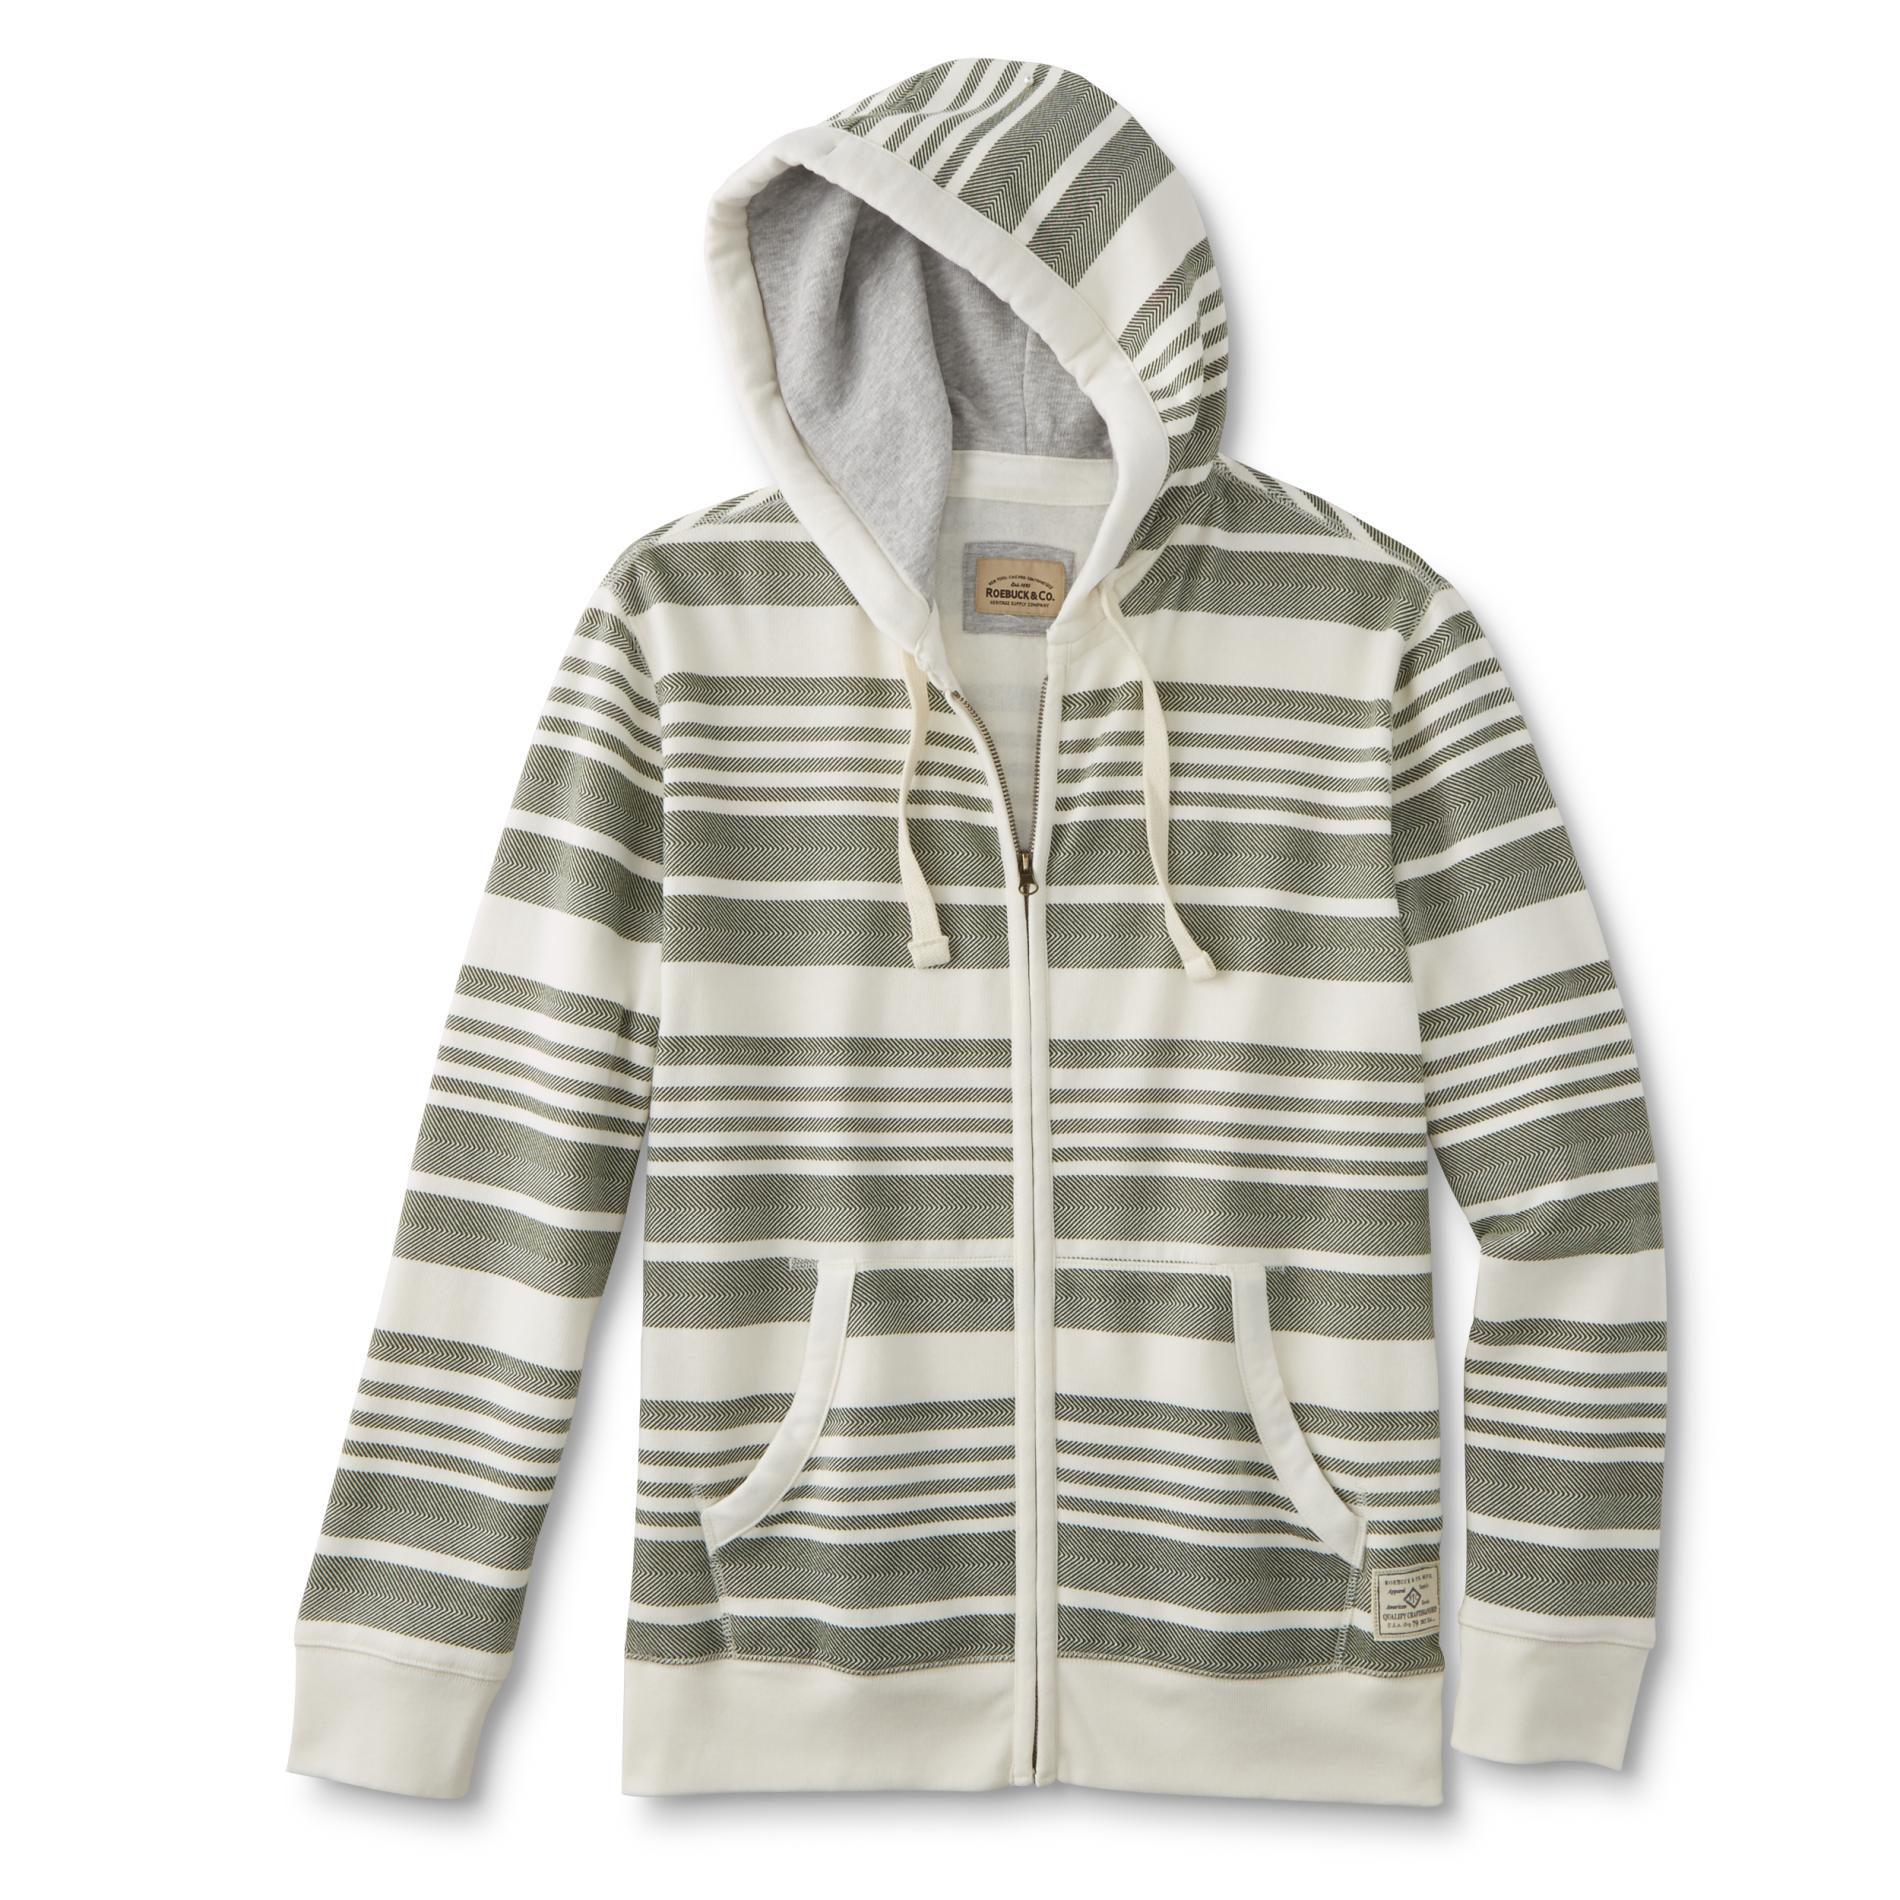 Roebuck & Co. Young Men's Hoodie Jacket - Striped PartNumber: 043VA99184812P MfgPartNumber: MF7RC17402YM